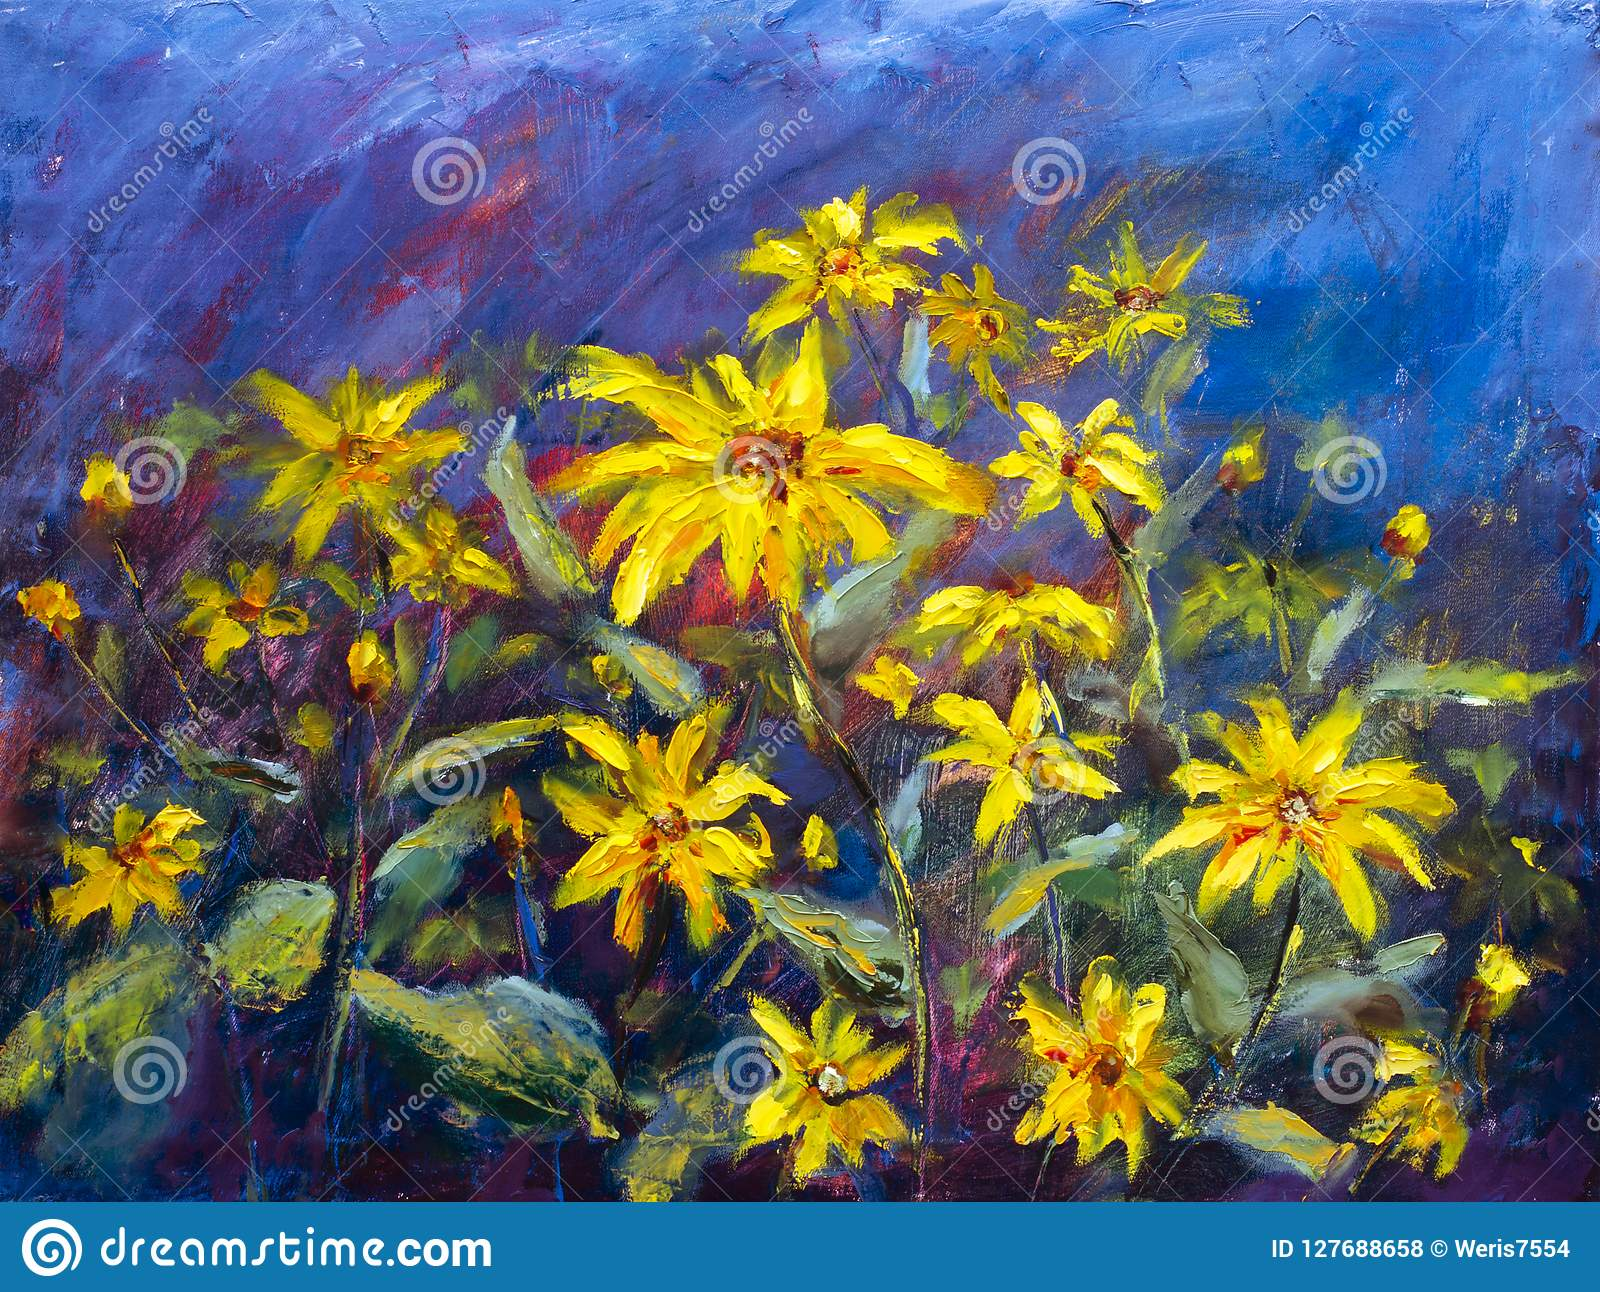 Flowers Painting Yellow Wild Flowers Daisies Orange Sunflowers On A Blue Background Oil Paintings Landscape Impressionism Artwo Stock Illustration Illustration Of Modern Canvas 127688658